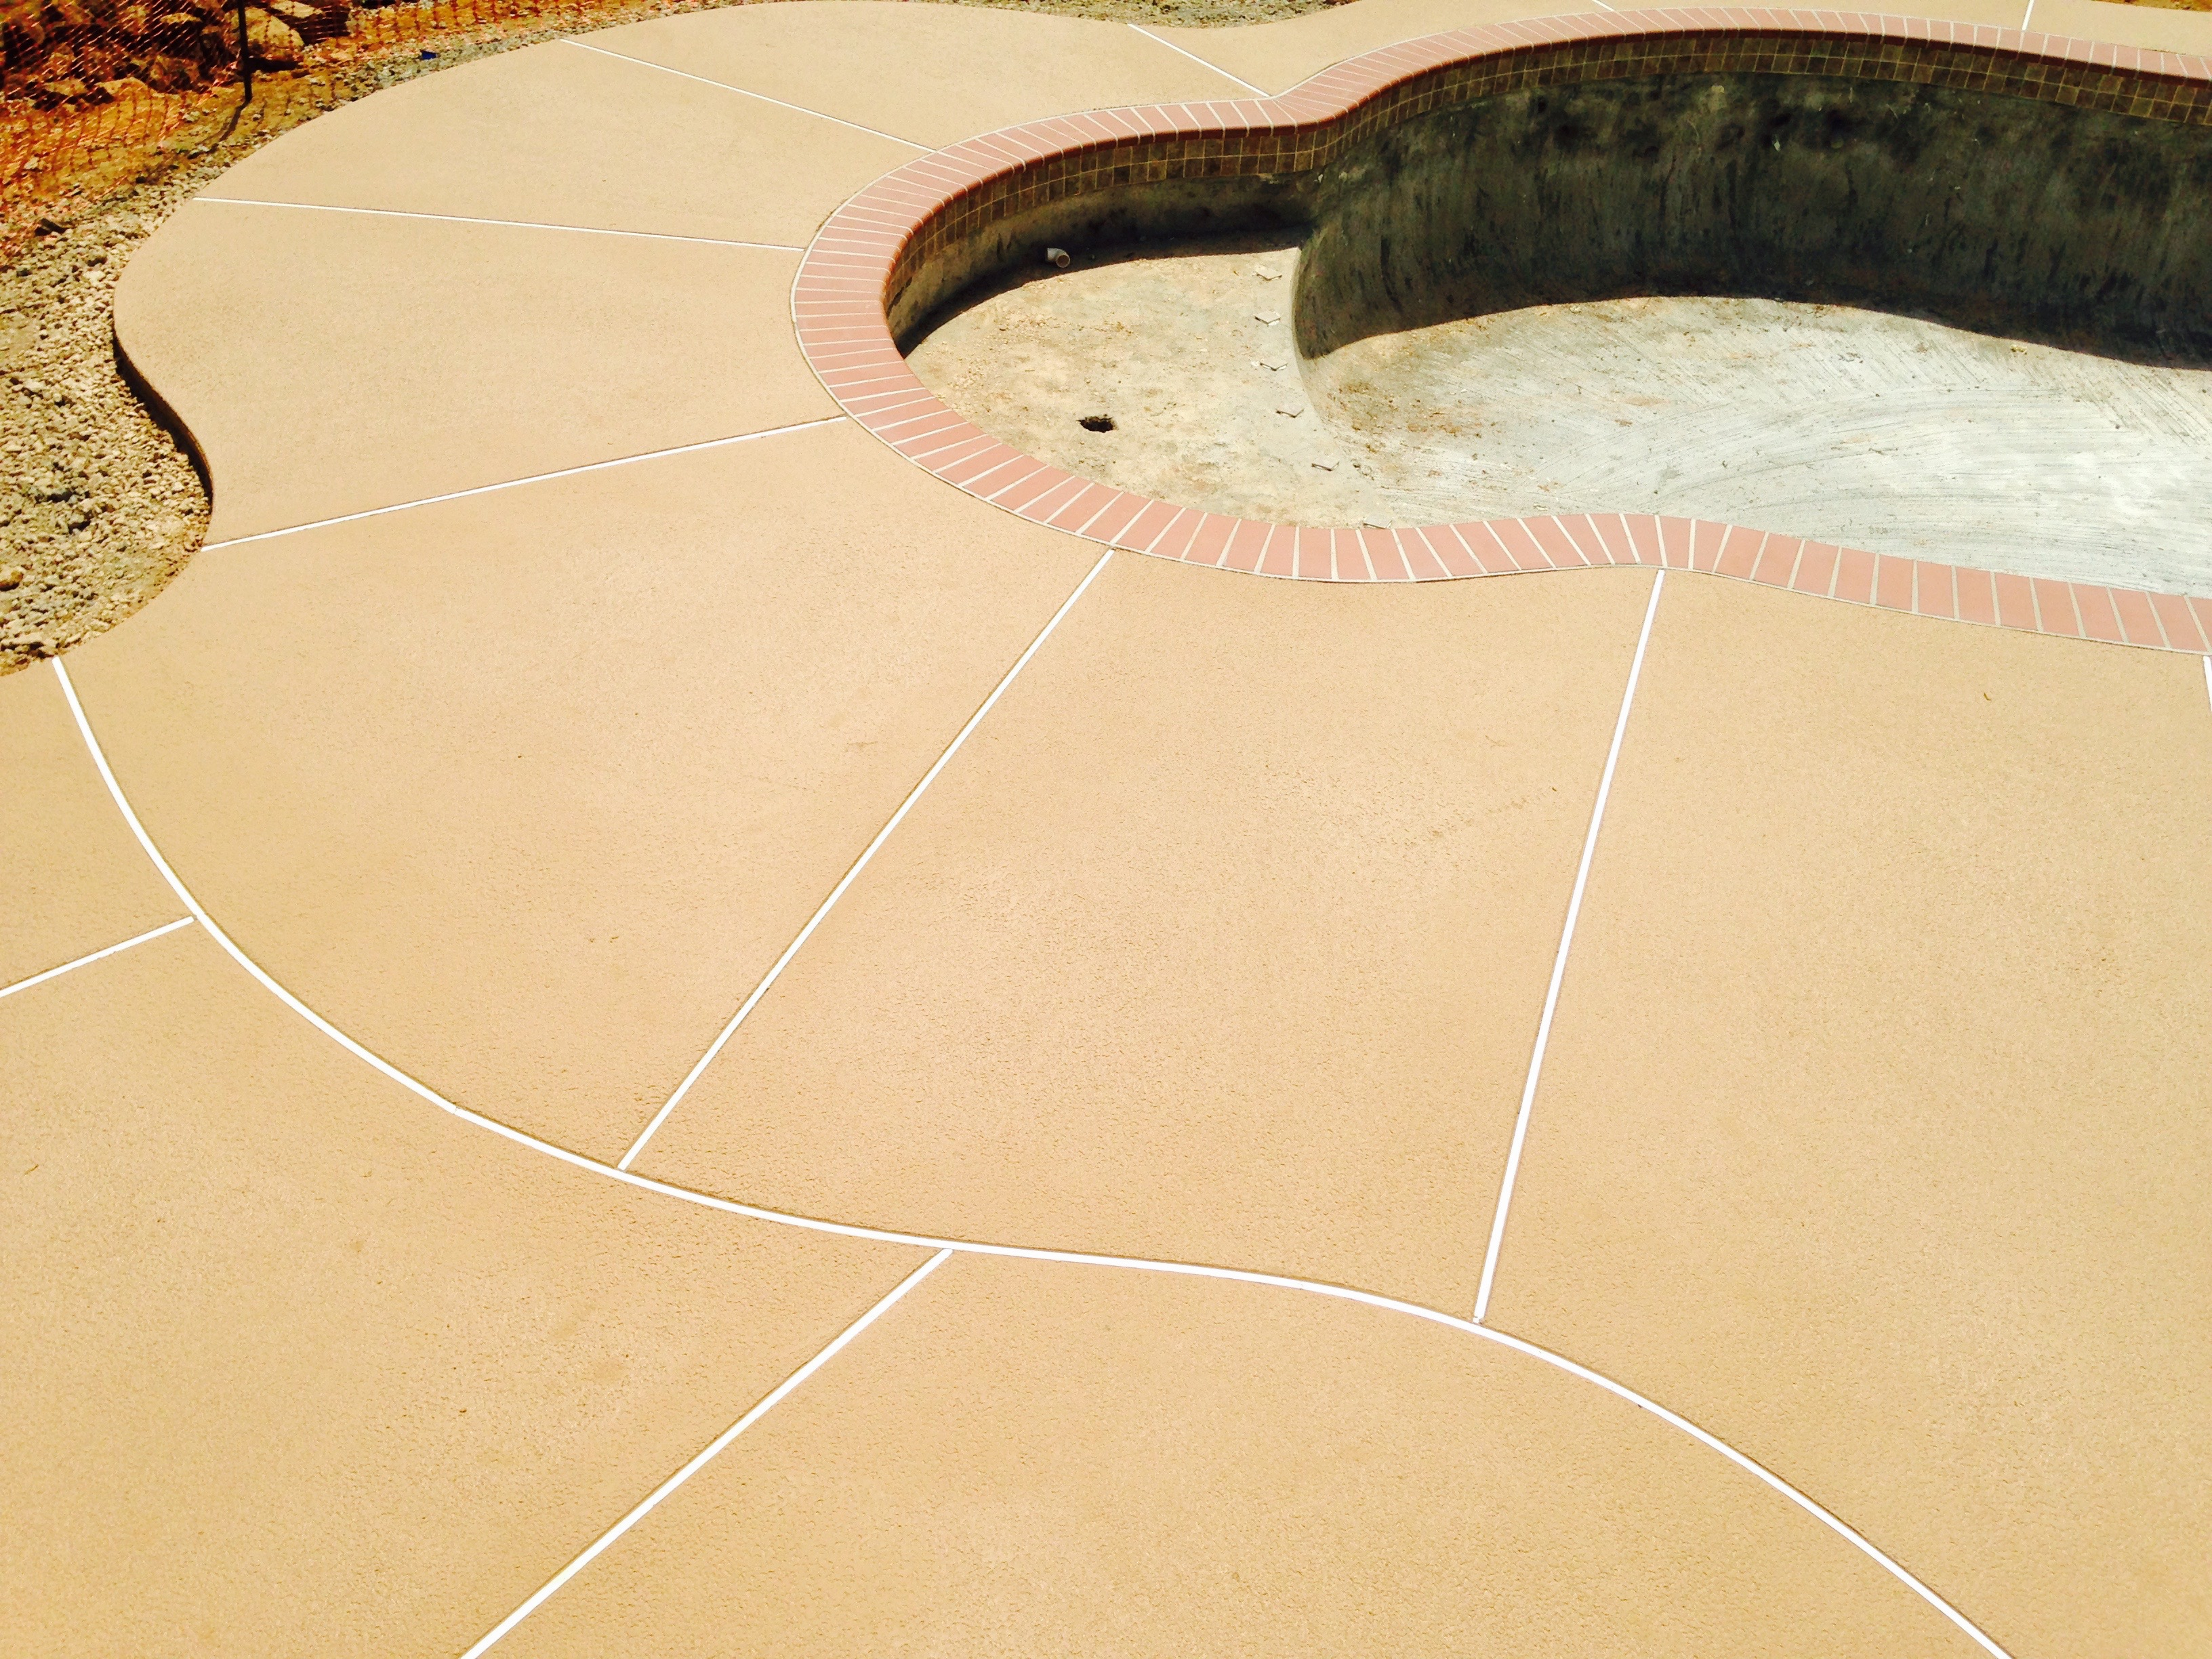 Yackle Concrete Kool Deck with regard to dimensions 3264 X 2448